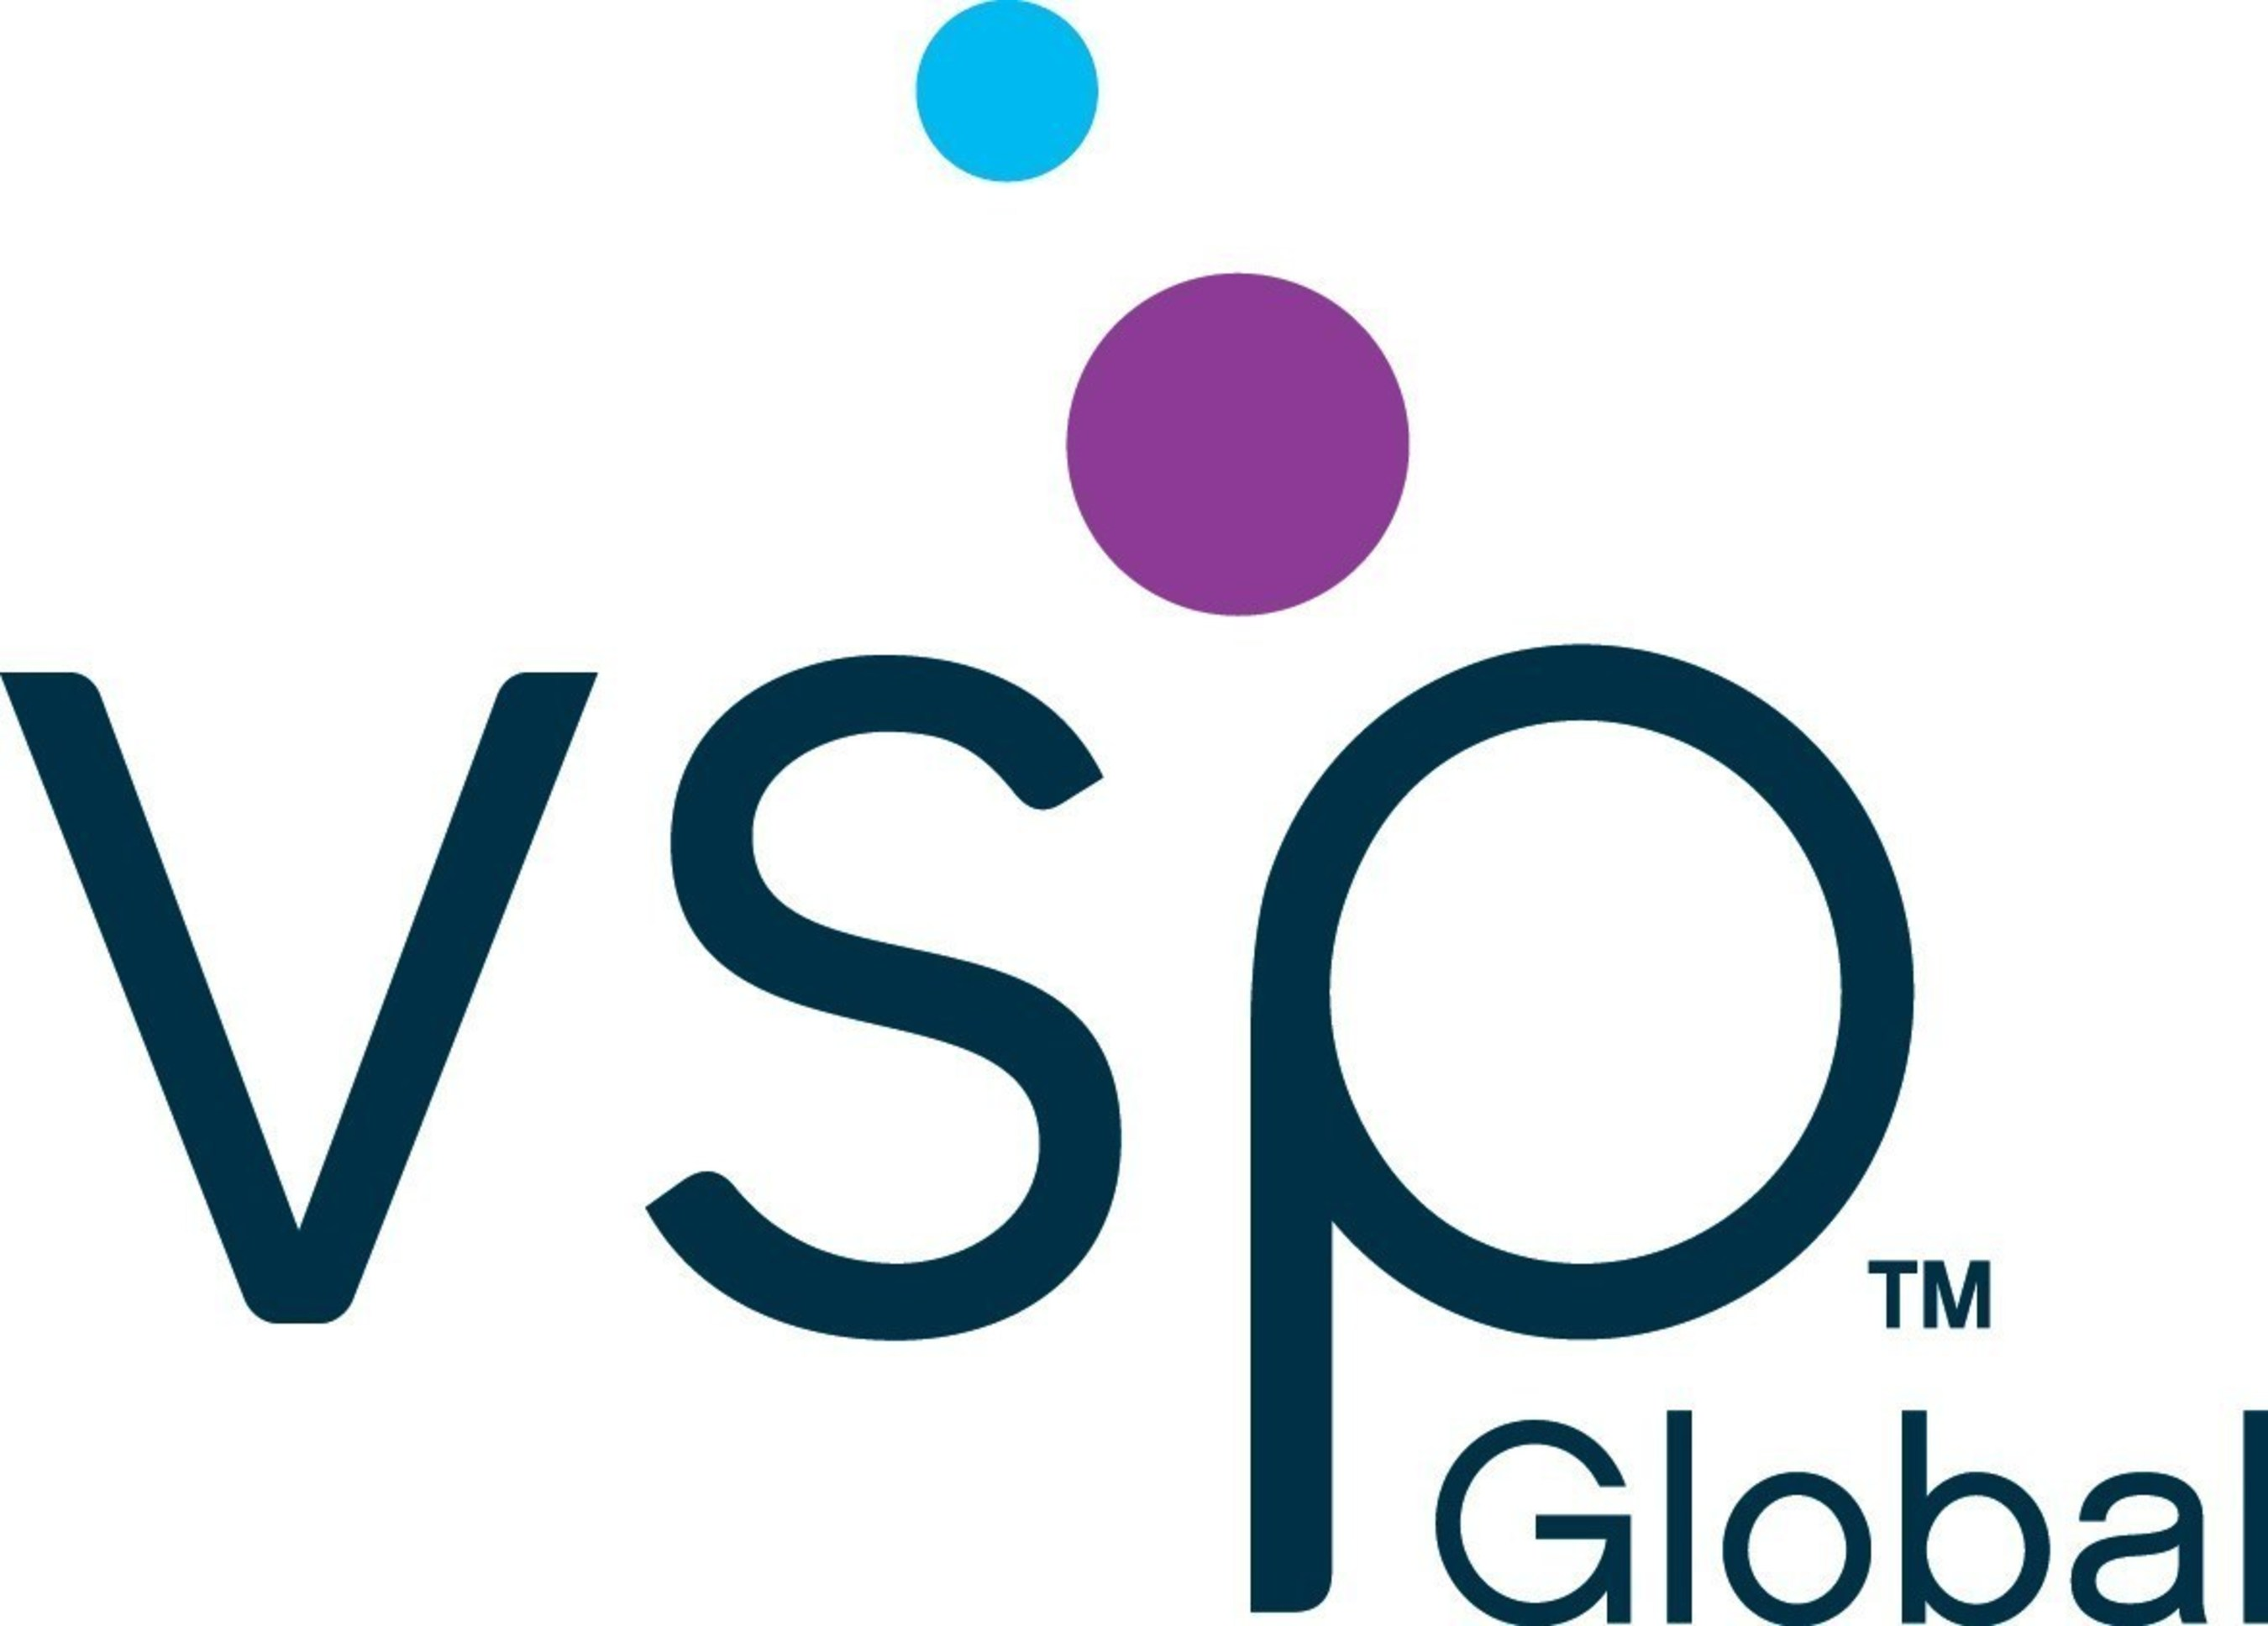 VSP Global' Partners With Eye Care Technology Startup Vizzario